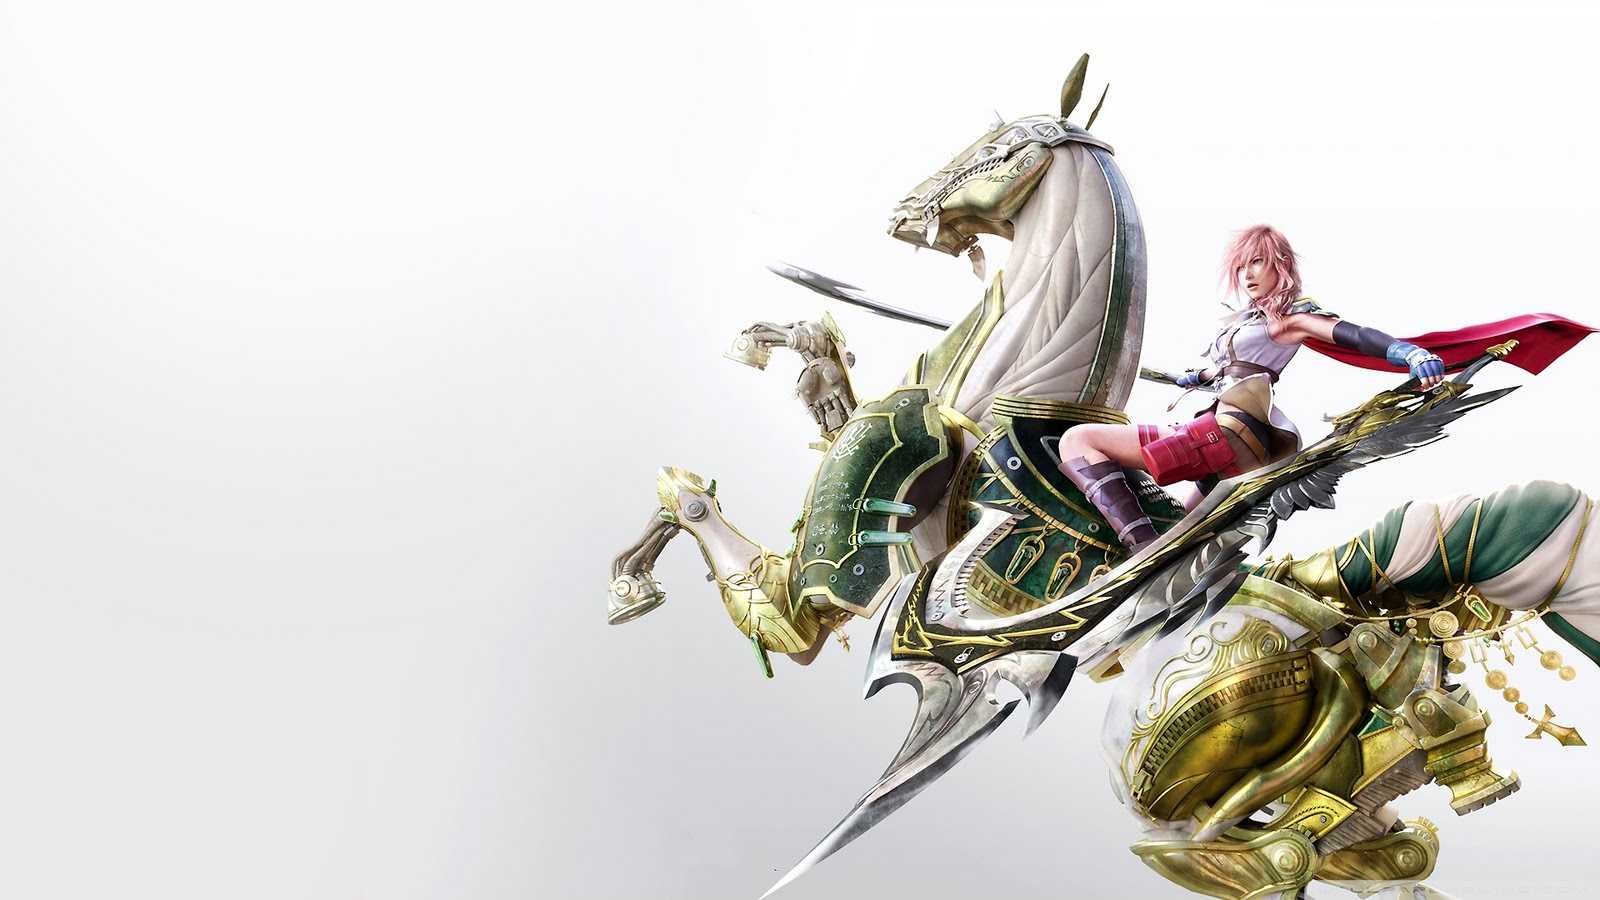 wallpapers photo photos Best Final Fantasy Wallpaper 2012 Full HD On 1600x900